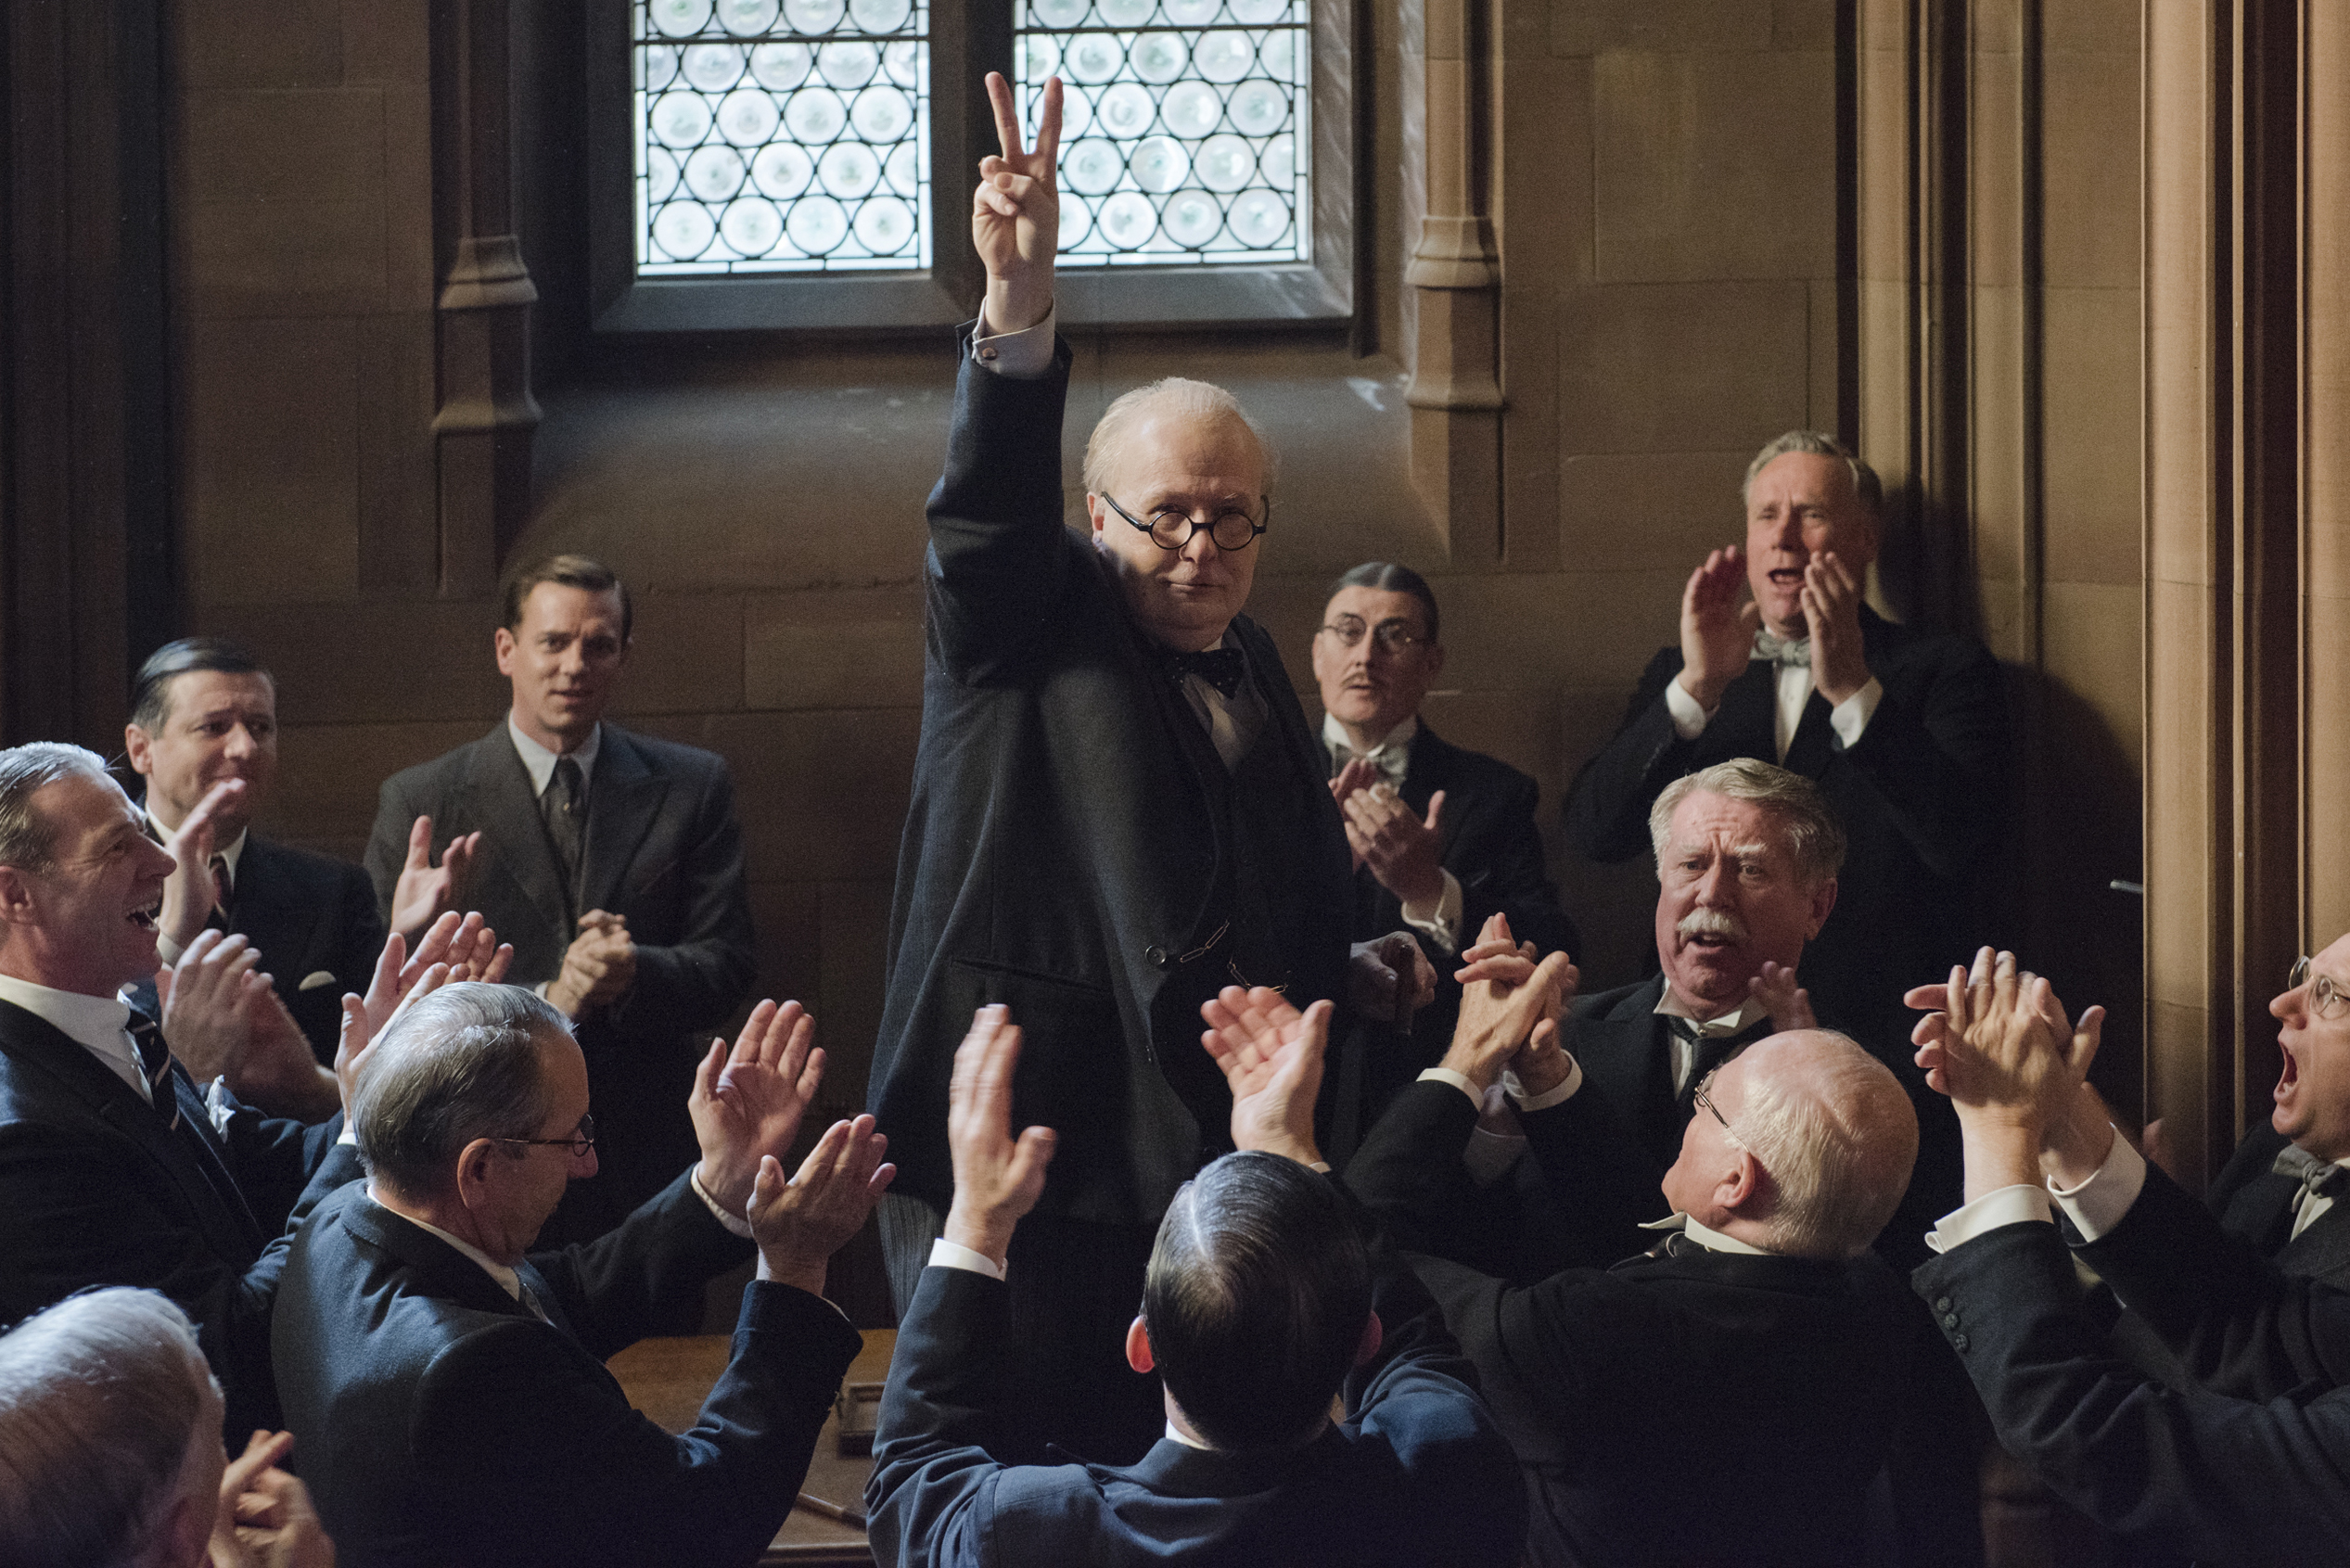 4106_D013_00374_CROP(ctr) Gary Oldman stars as Winston Churchill in director Joe Wright's DARKEST HOUR, a Focus Features release.Credit: Jack English / Focus Features